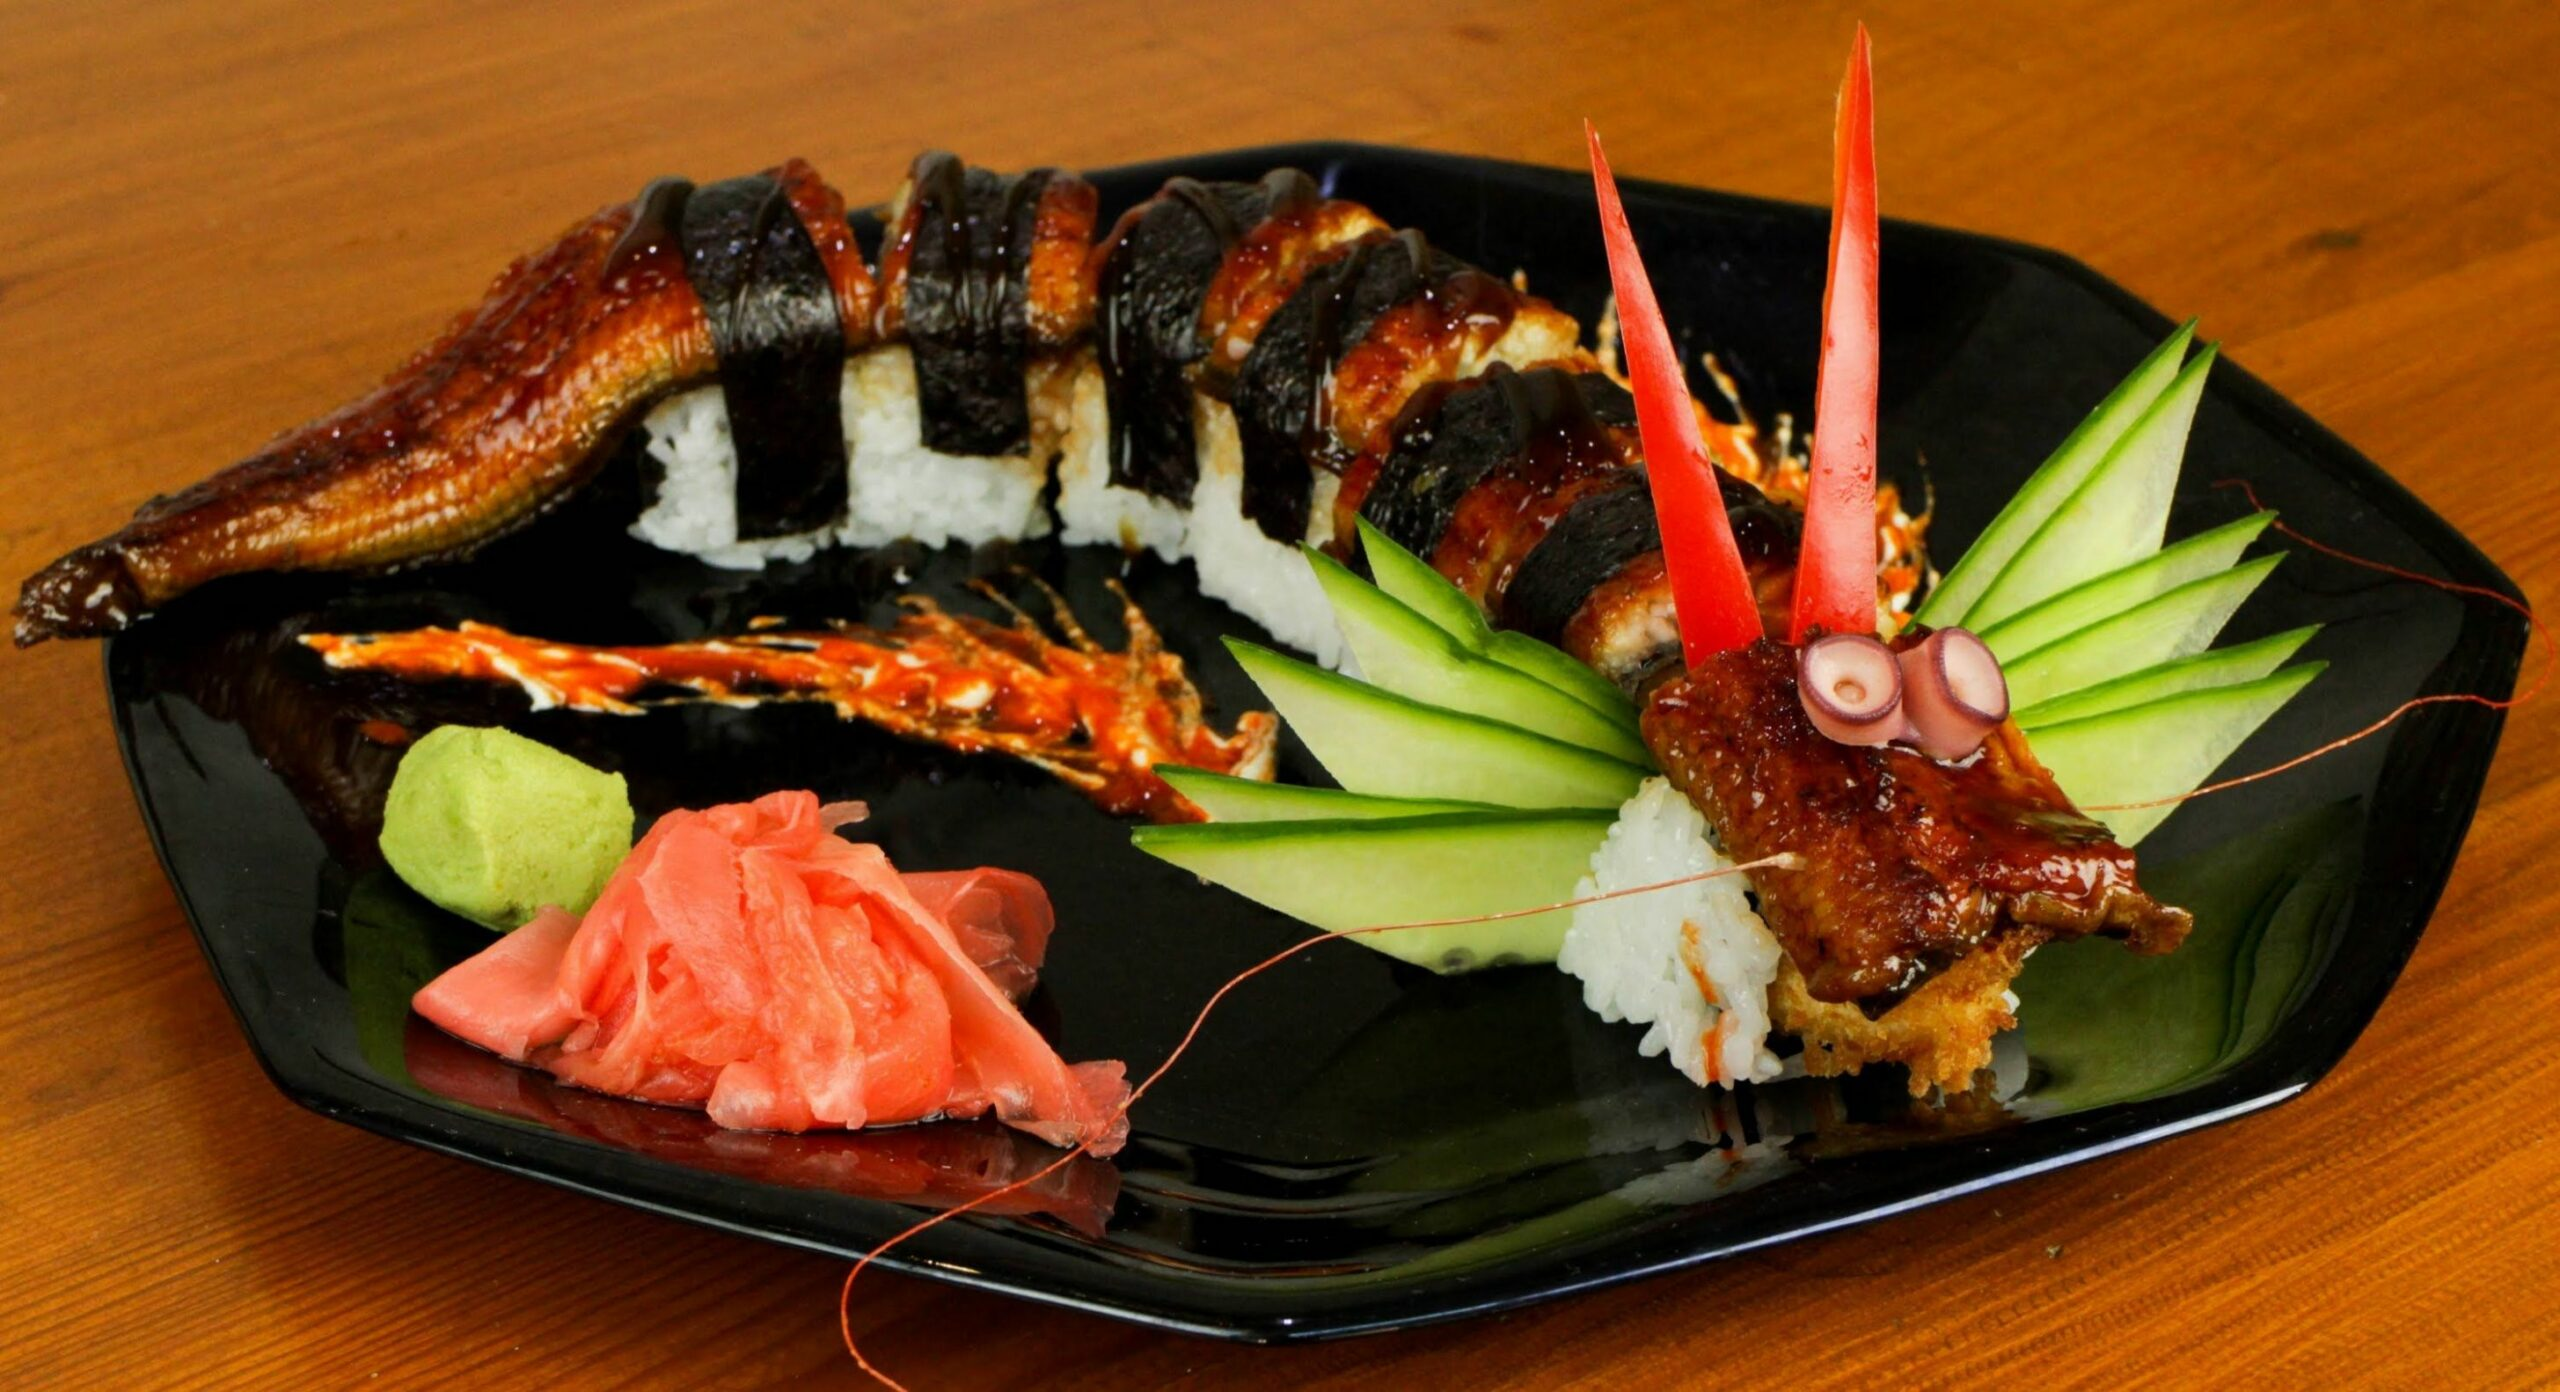 Japanese food recipies | Dragon Sushi Roll Recipe - Japanese Food ..